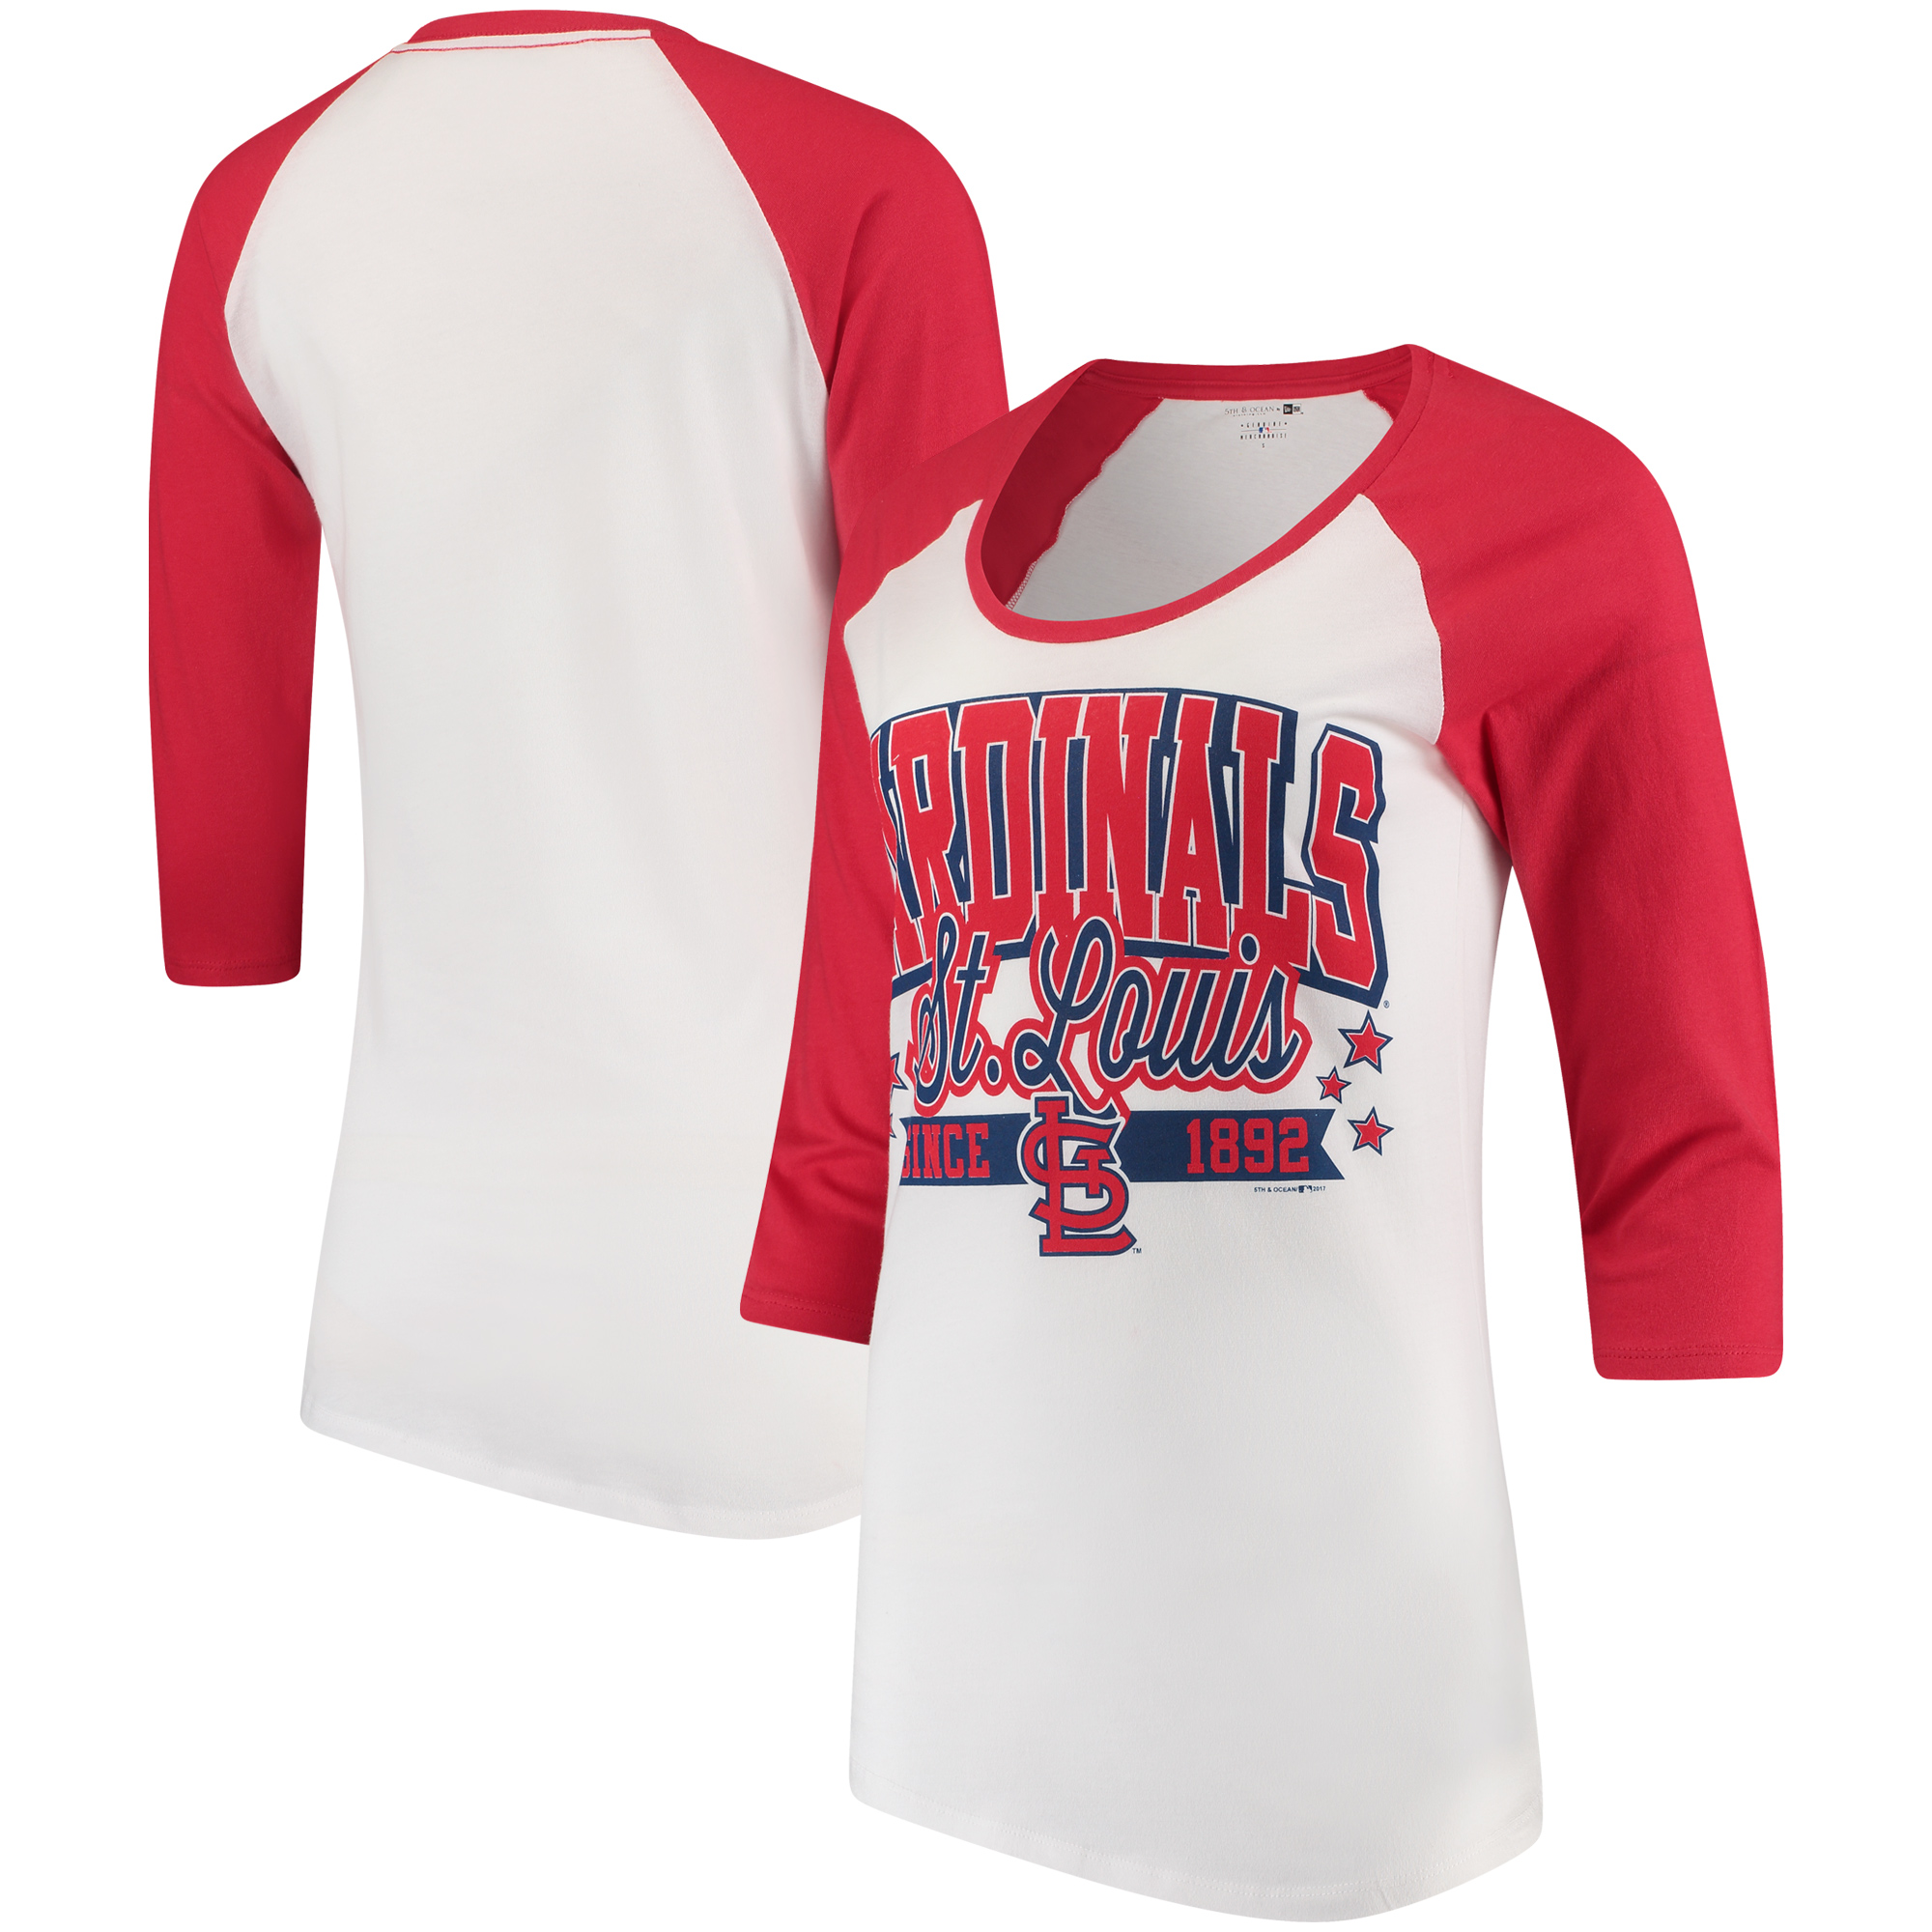 St. Louis Cardinals 5th & Ocean by New Era Women's Team Banner 3/4-Sleeve Raglan T-Shirt - White/Red